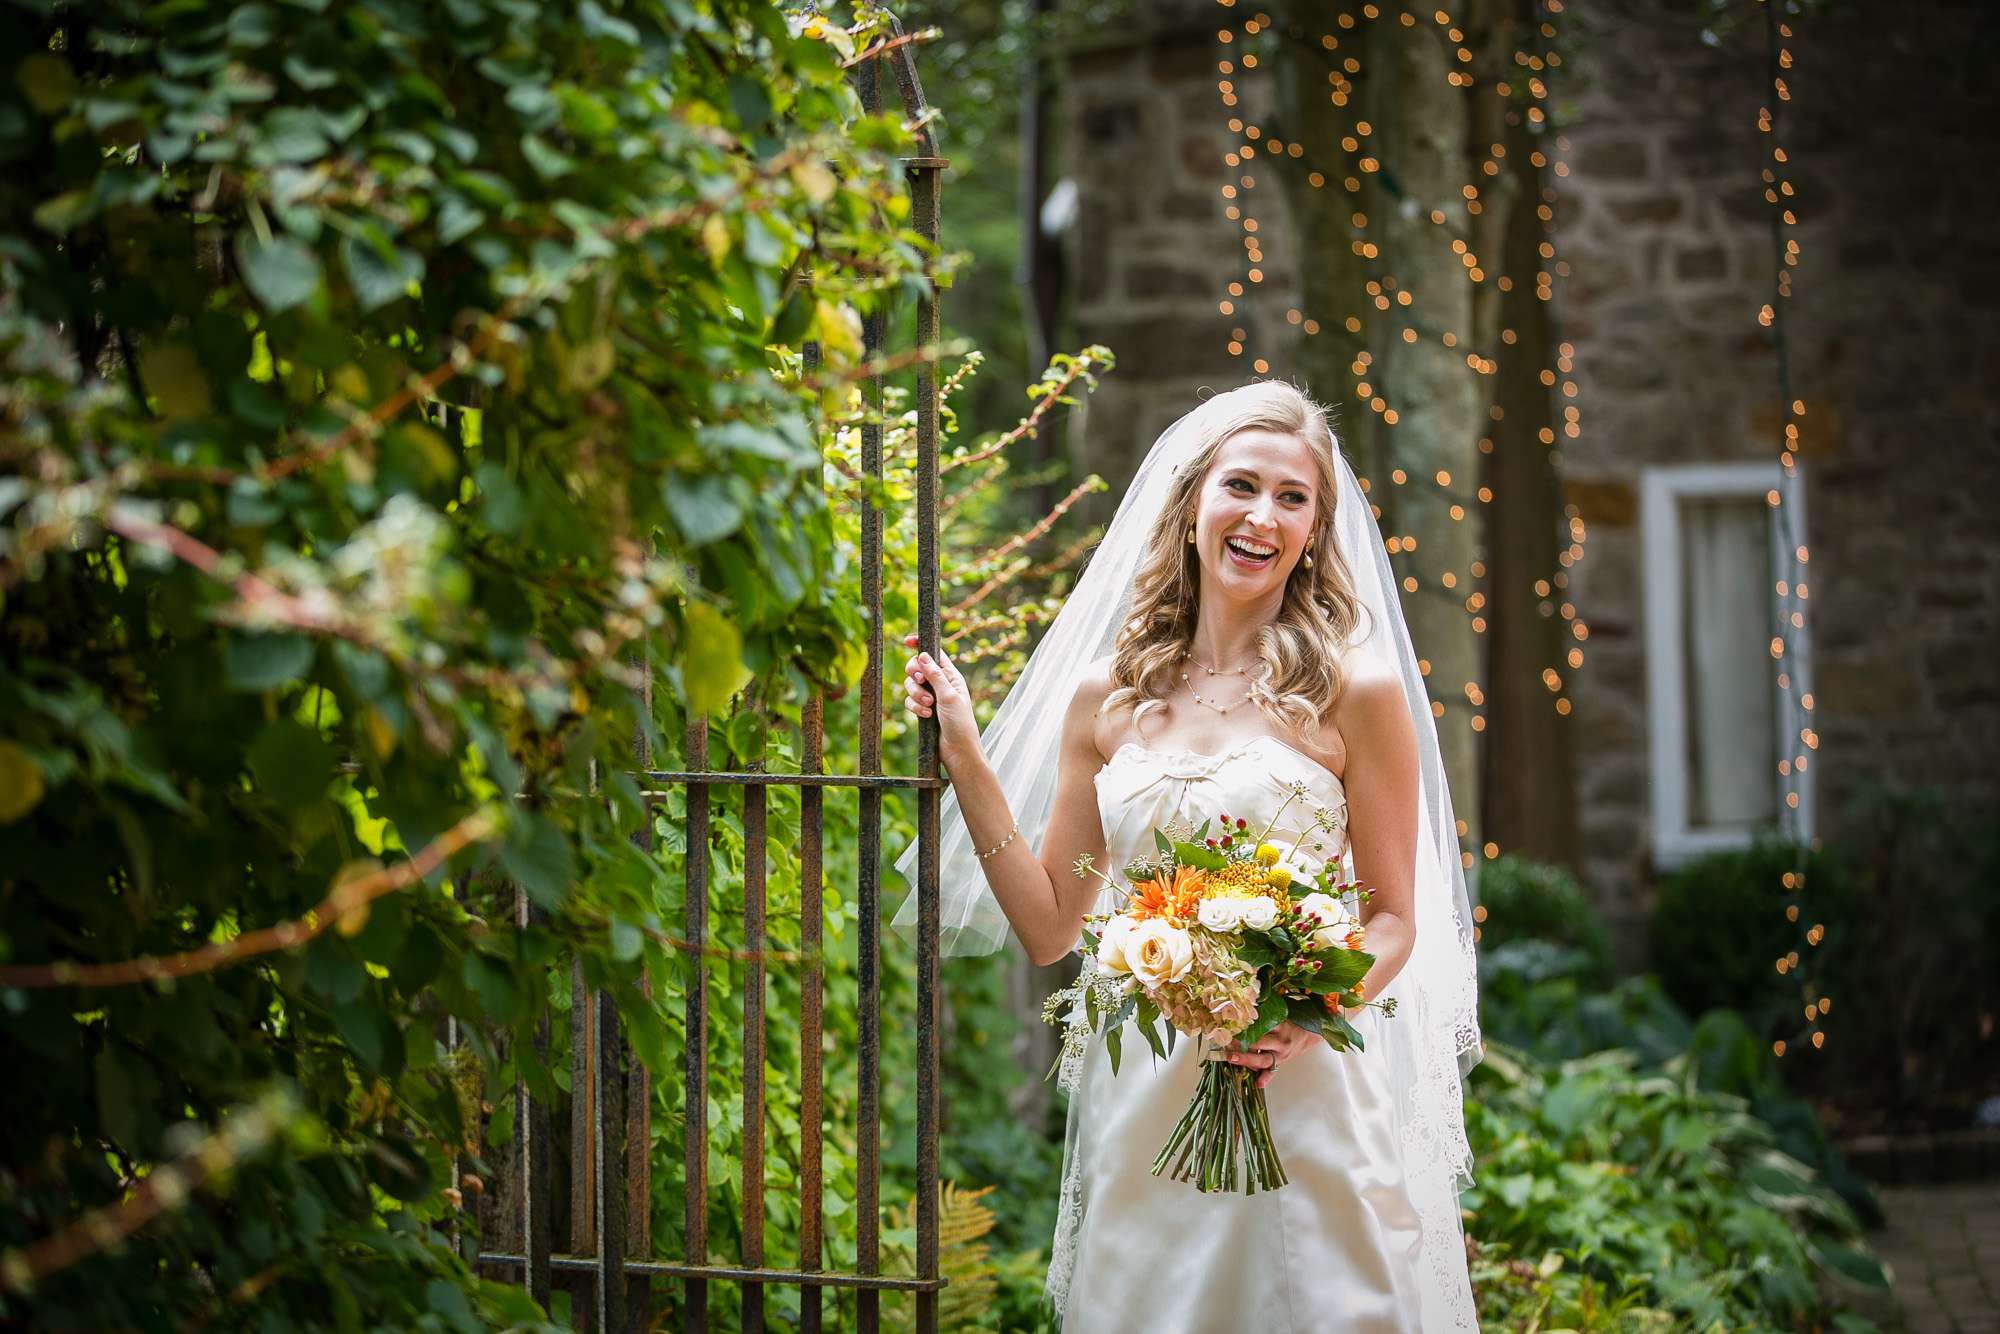 Best Wedding Photography at Holly Hedge Estate - Jenna Perfette Photography